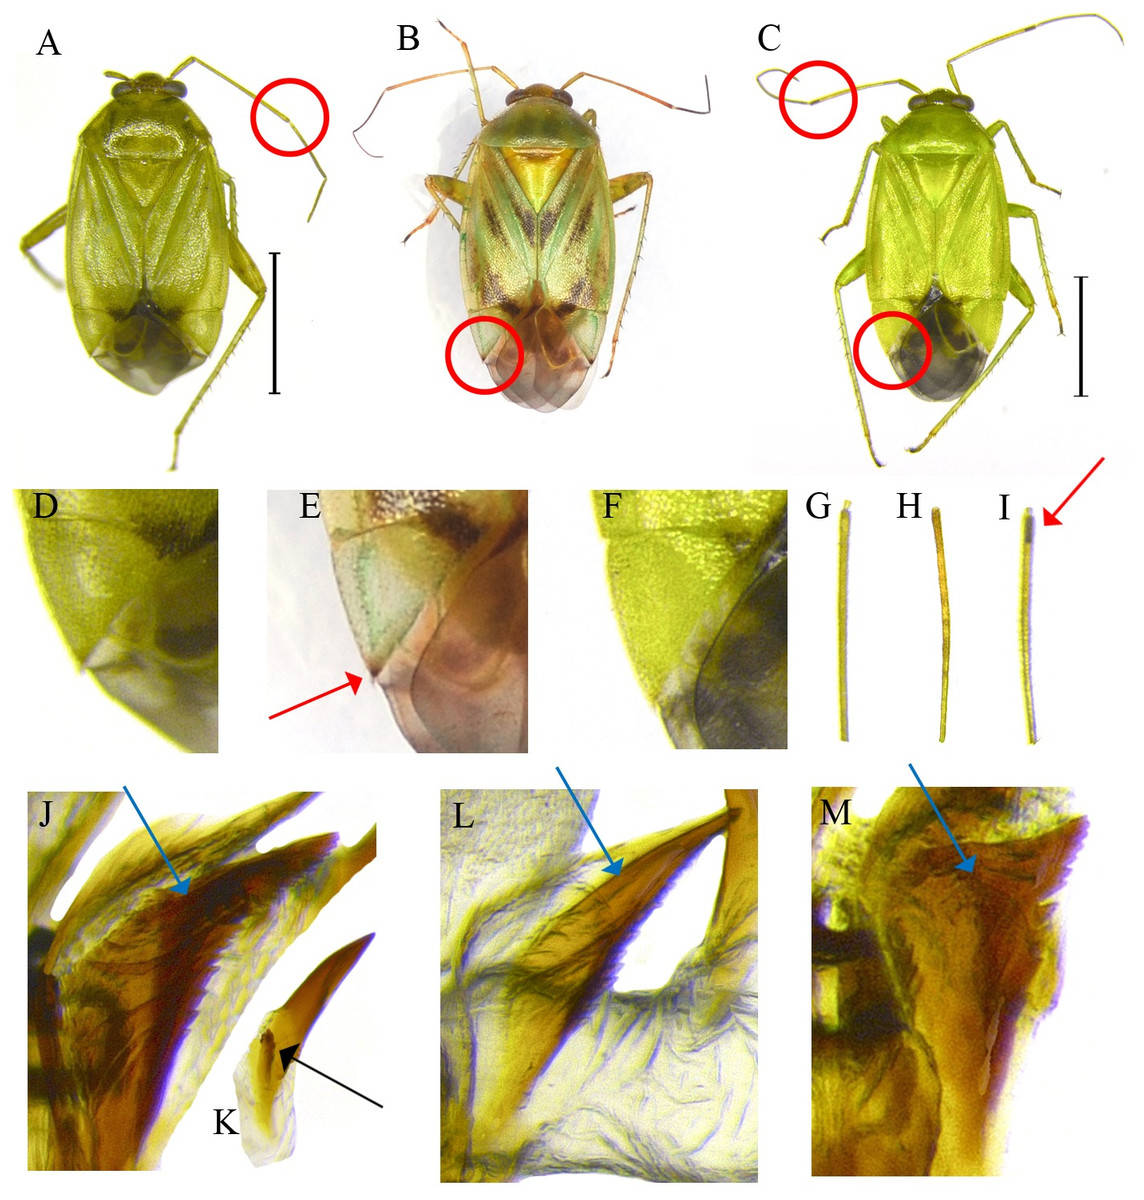 COI barcoding of plant bugs